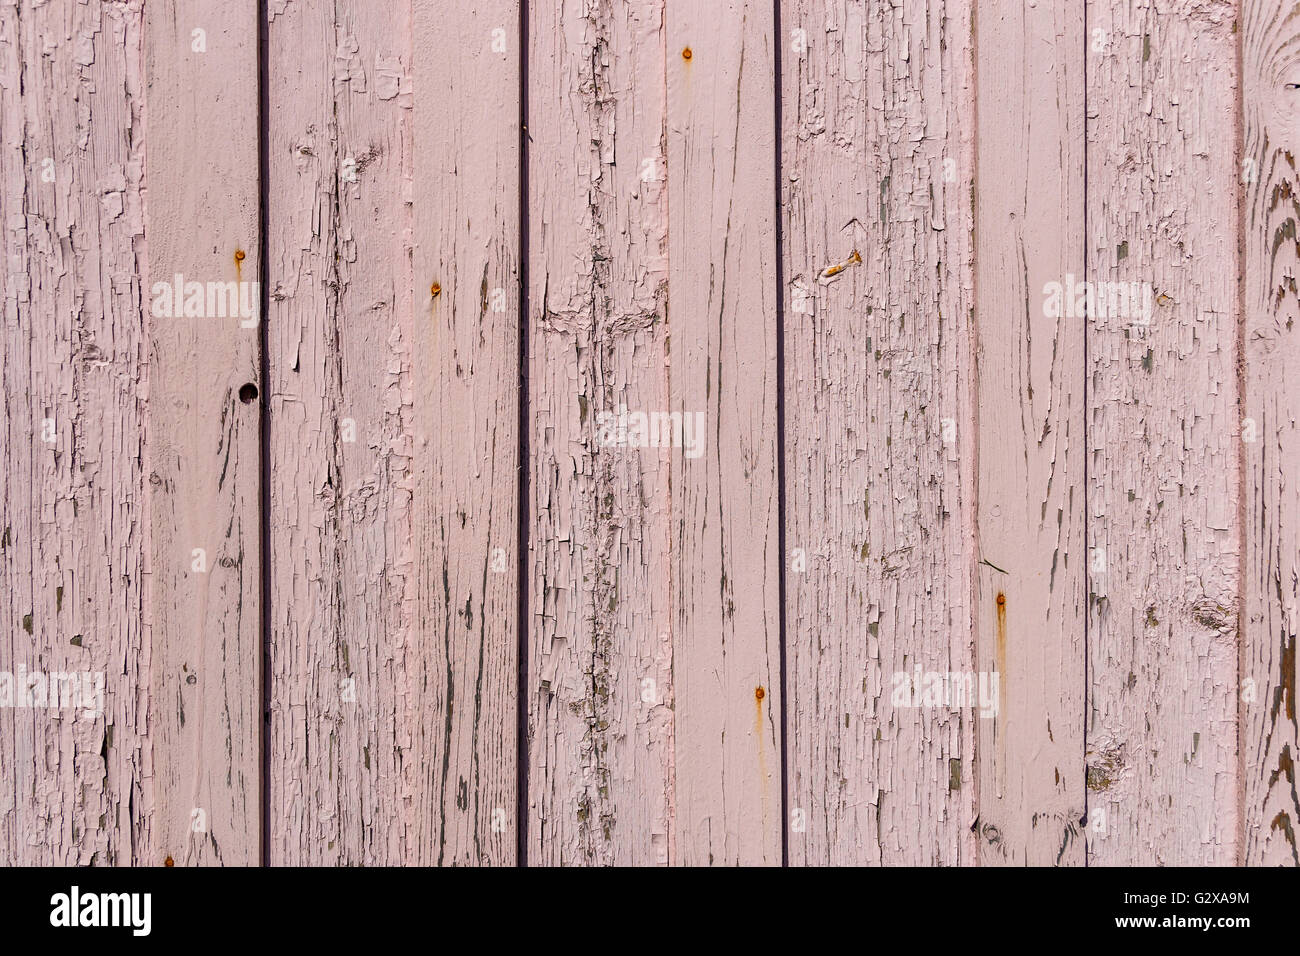 Details of an old pink wooden wall - Stock Image